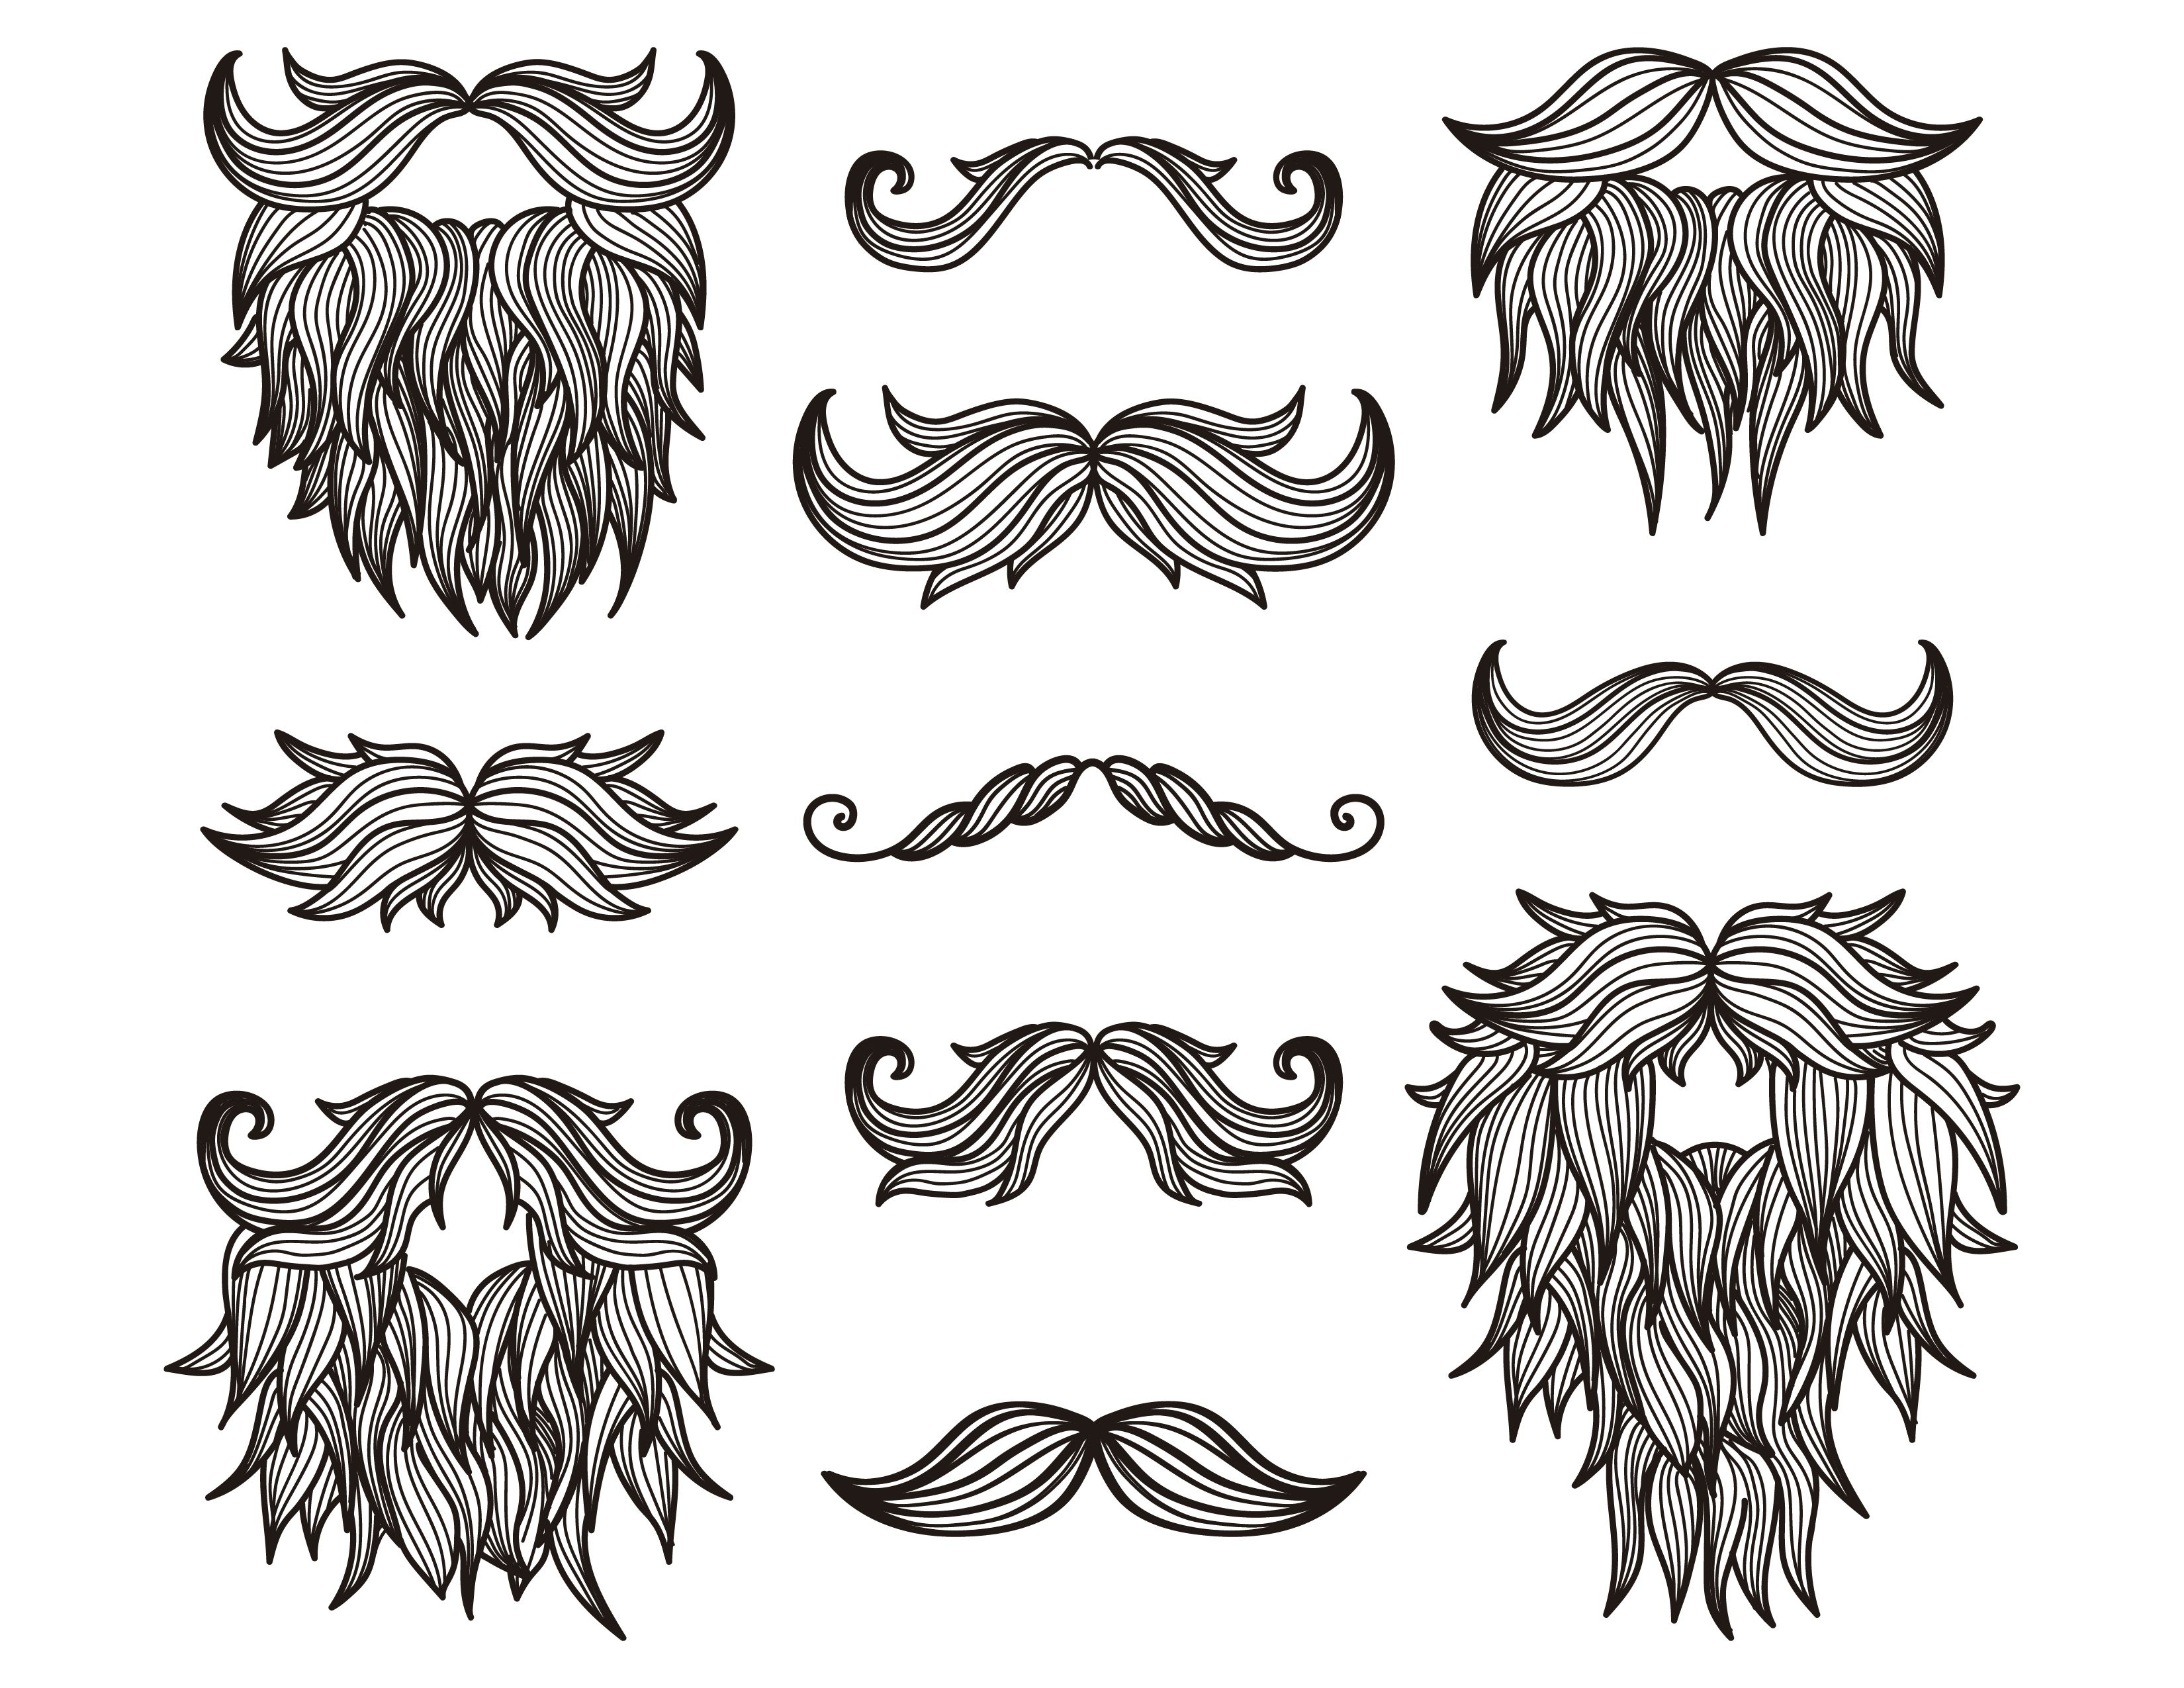 Colouring pages for november - November Movember Canada Dessin Colorier Adult Colouring Pagesadult